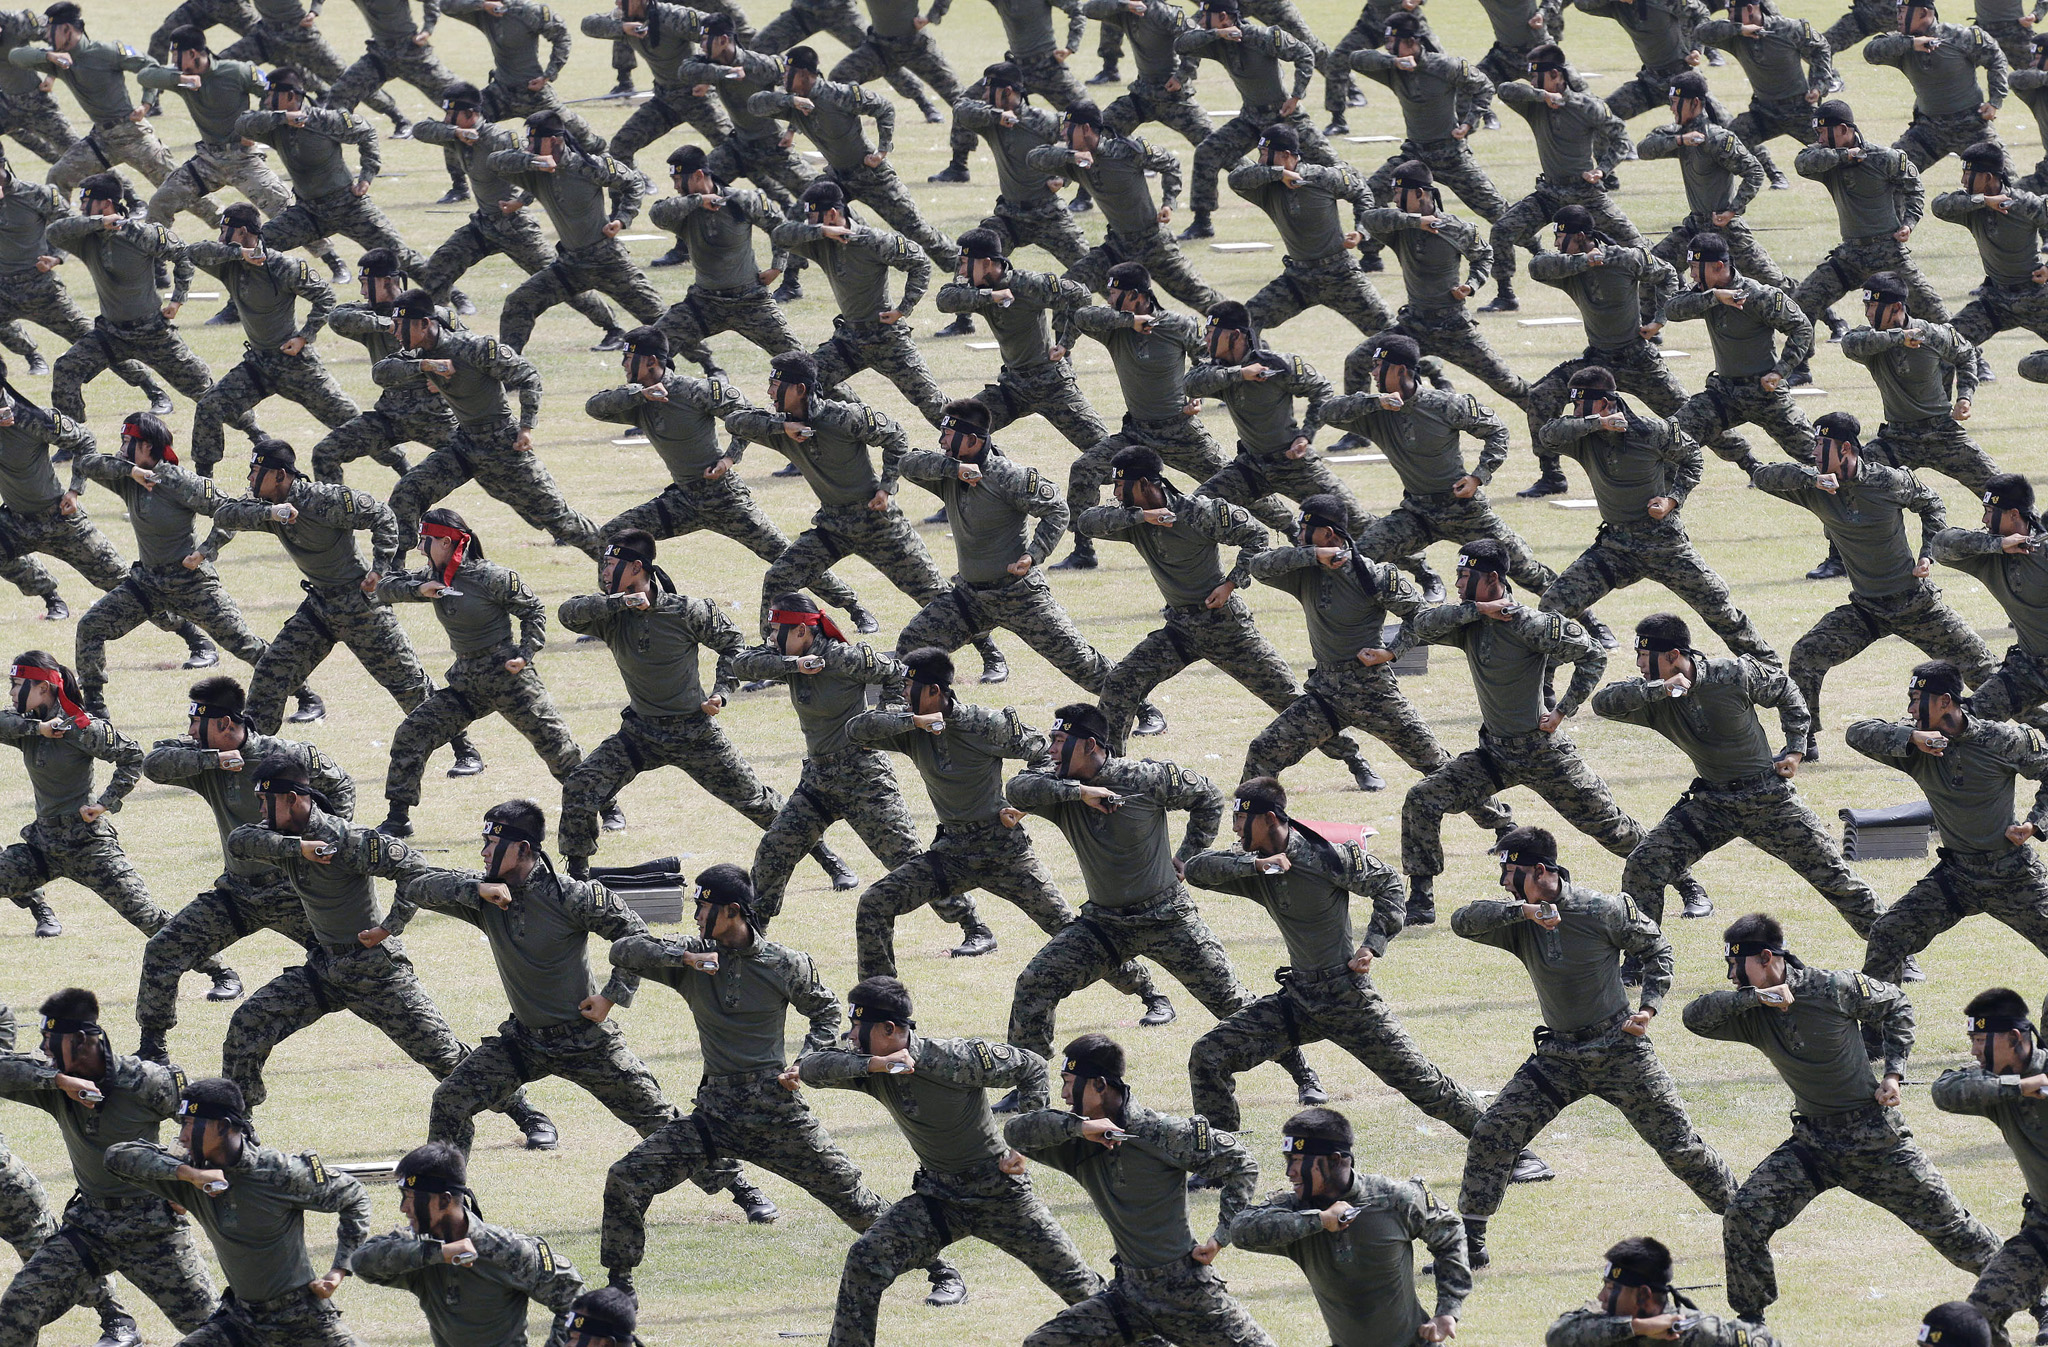 South Korean army soldiers demonstrate their martial arts skills during the 66th anniversary of Armed Forces Day at the Gyeryong military headquarters in Gyeryong, South Korea,